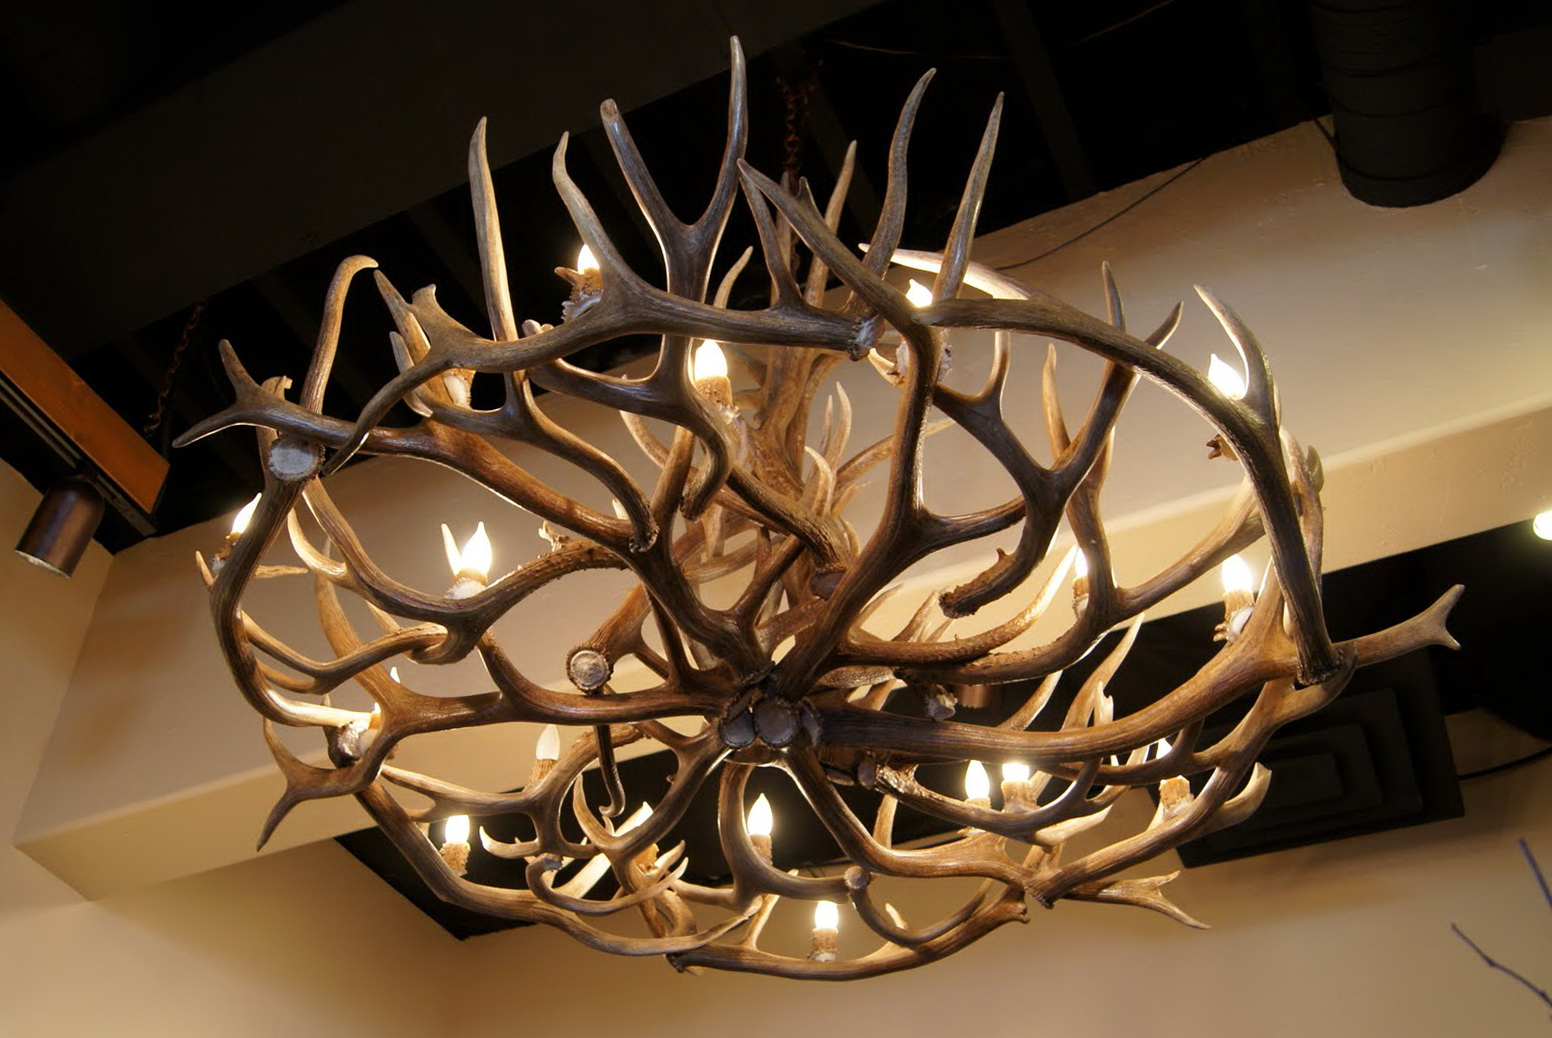 Deer antler chandelier nz home design ideas deer antler chandelier nz arubaitofo Image collections